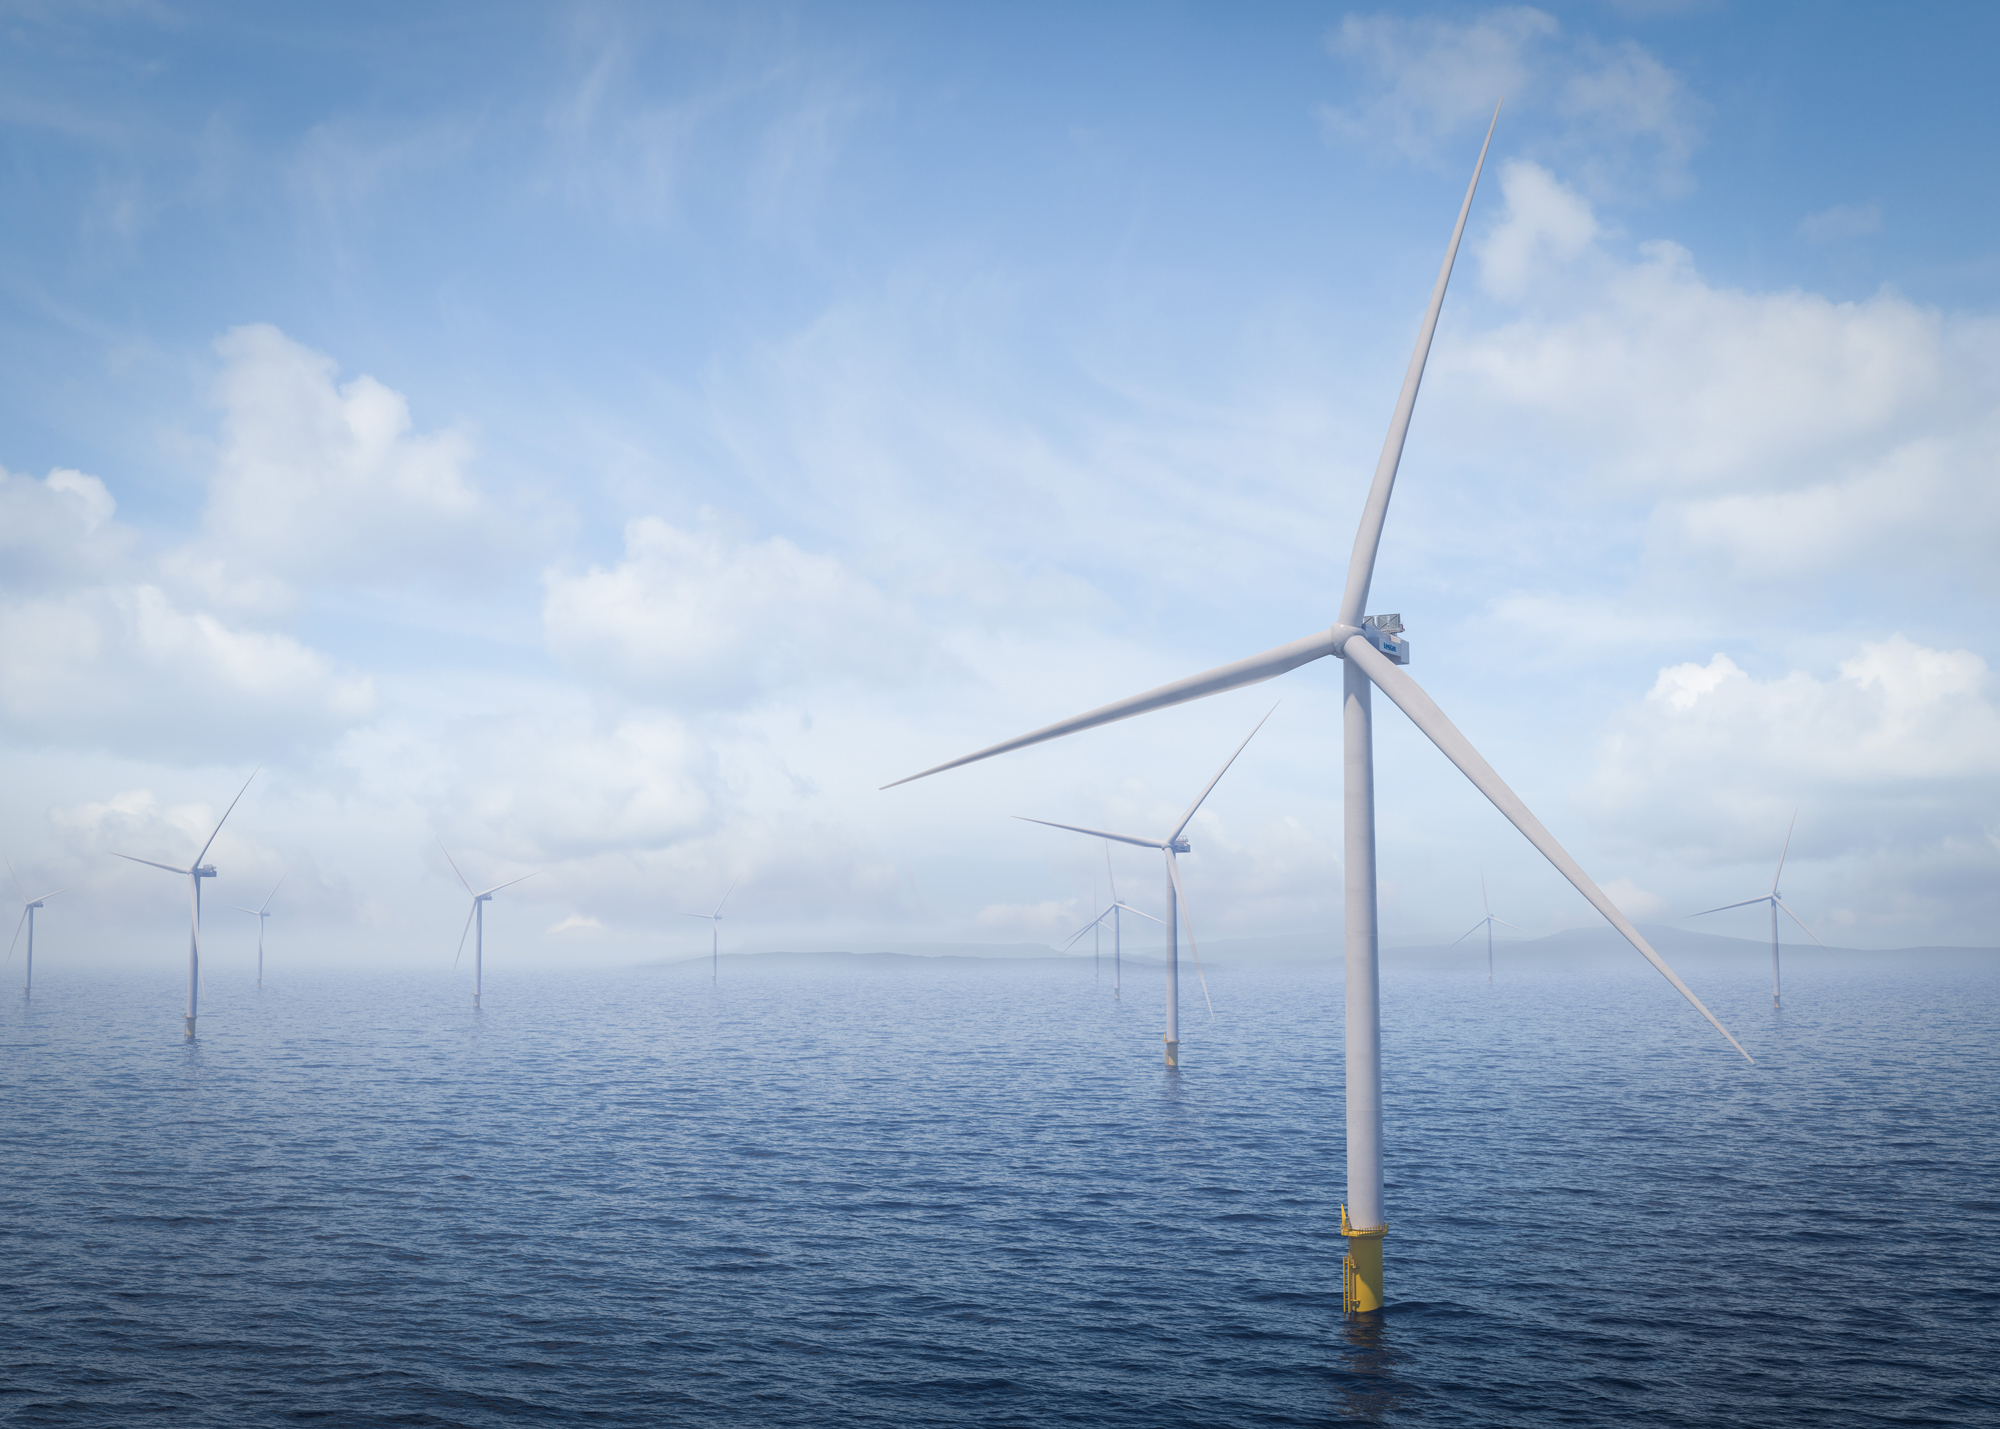 A rendering of Vestas's V236-15.0 MW turbine, which will be the largest in the world.